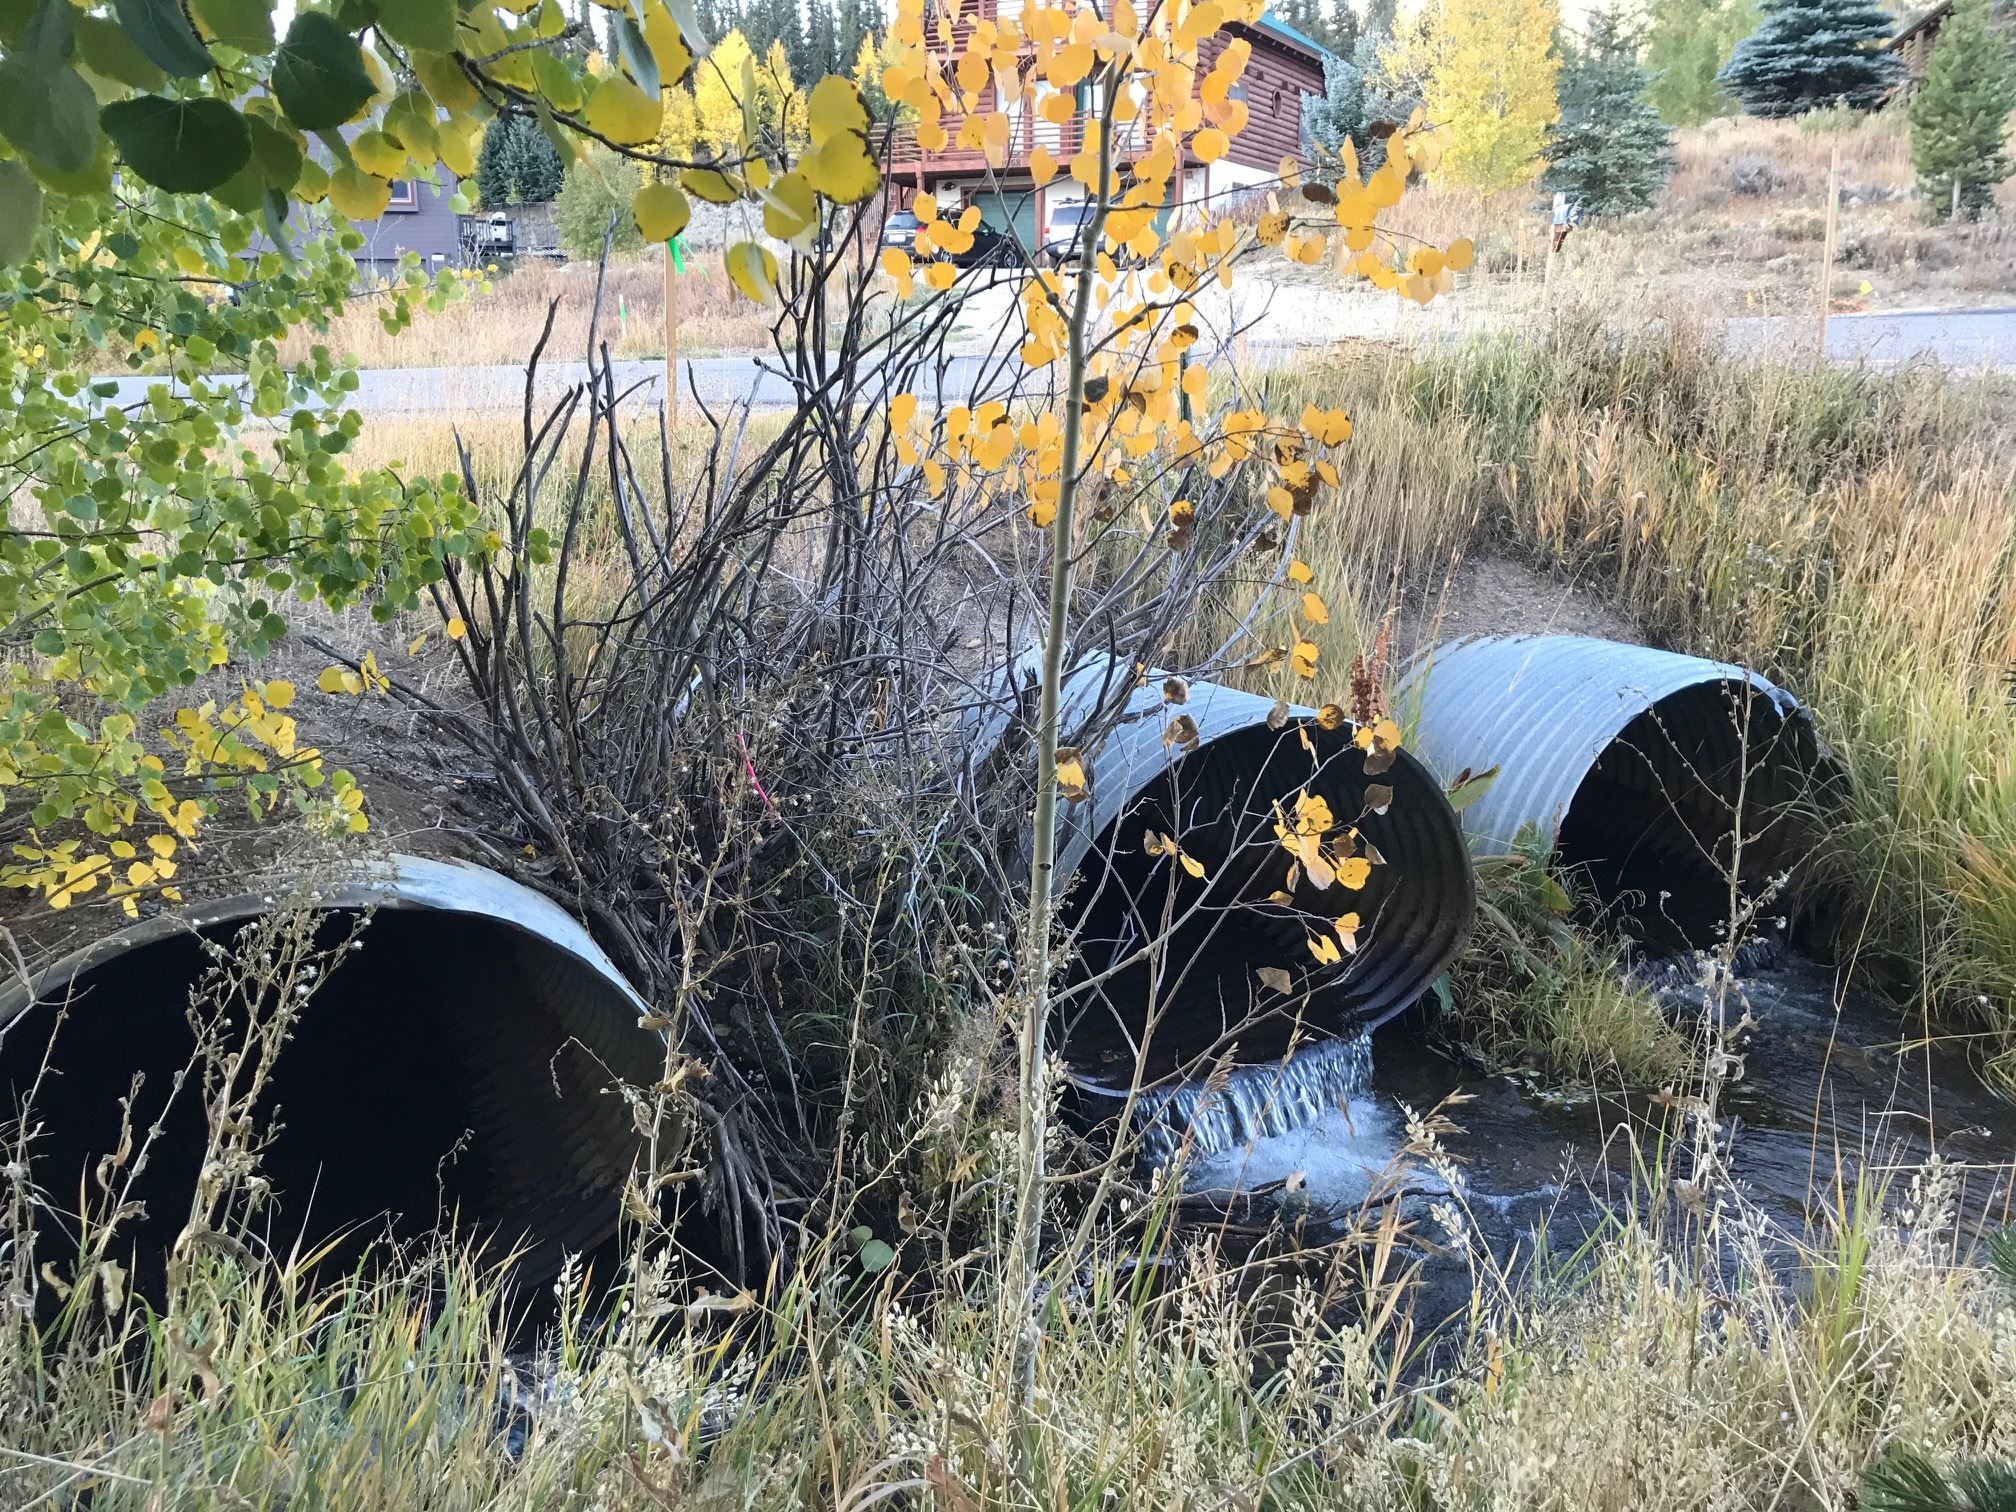 Aging culverts